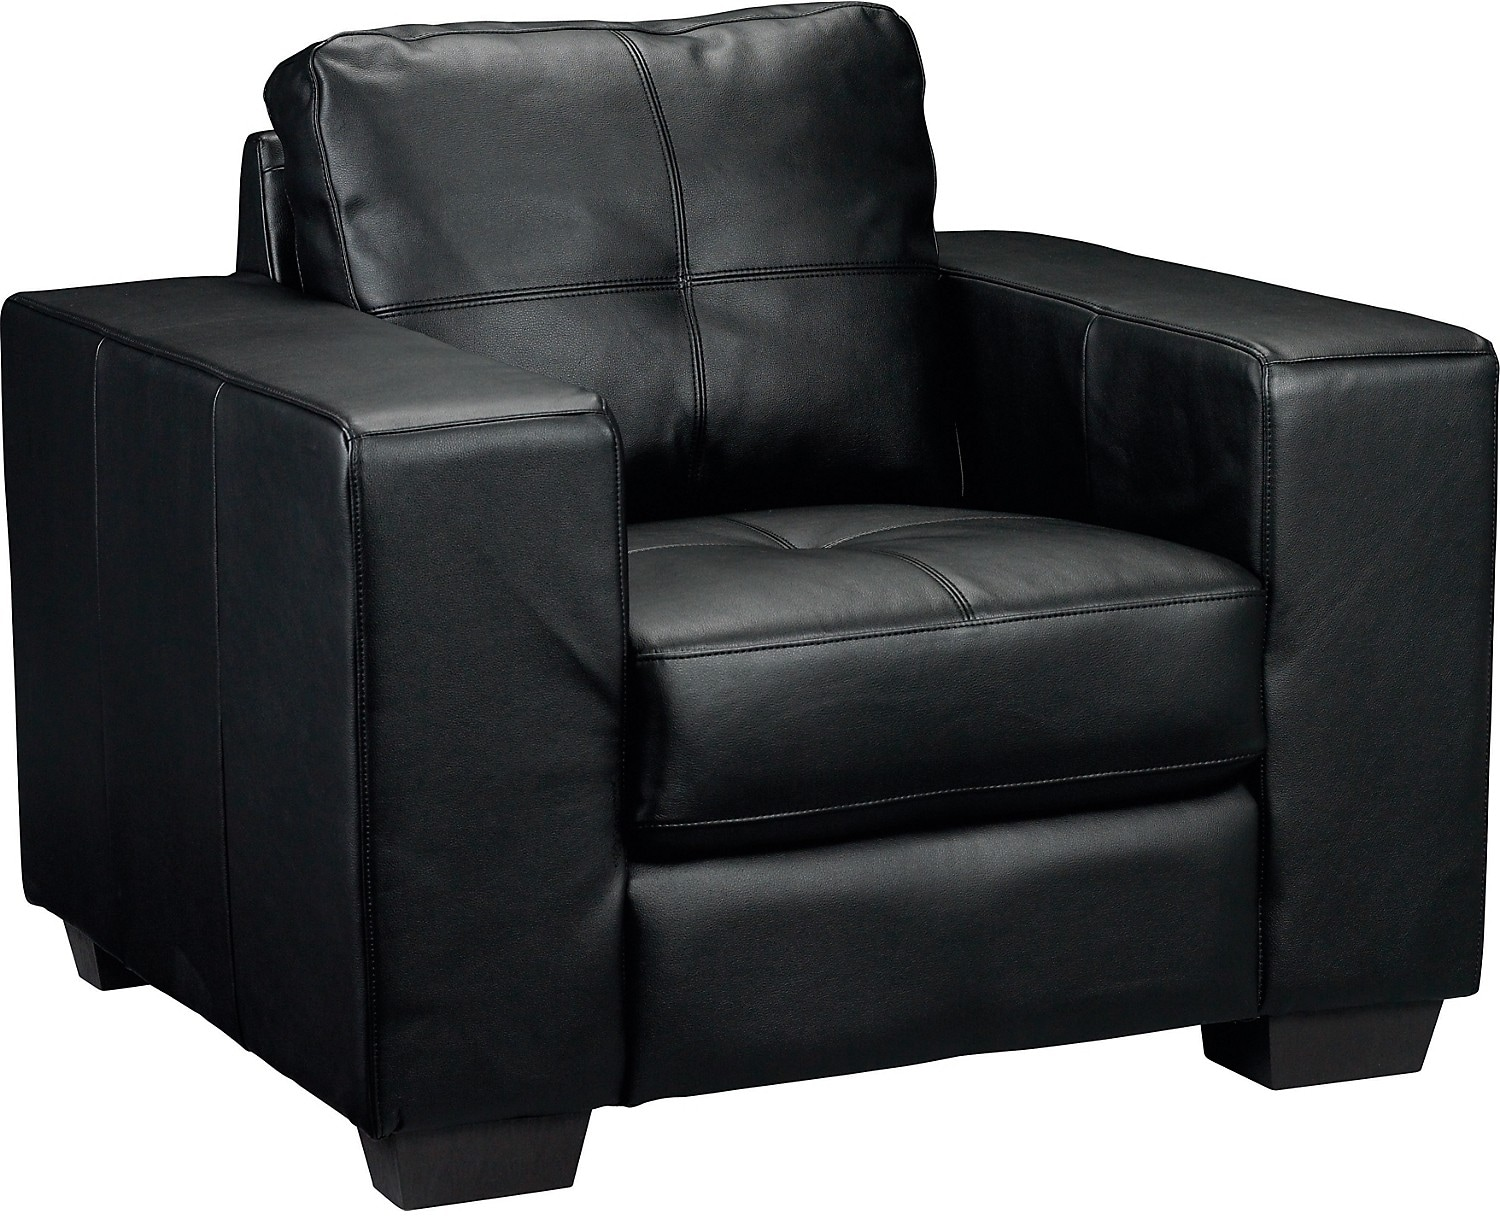 Living Room Furniture - Costa Black Bonded Leather Chair